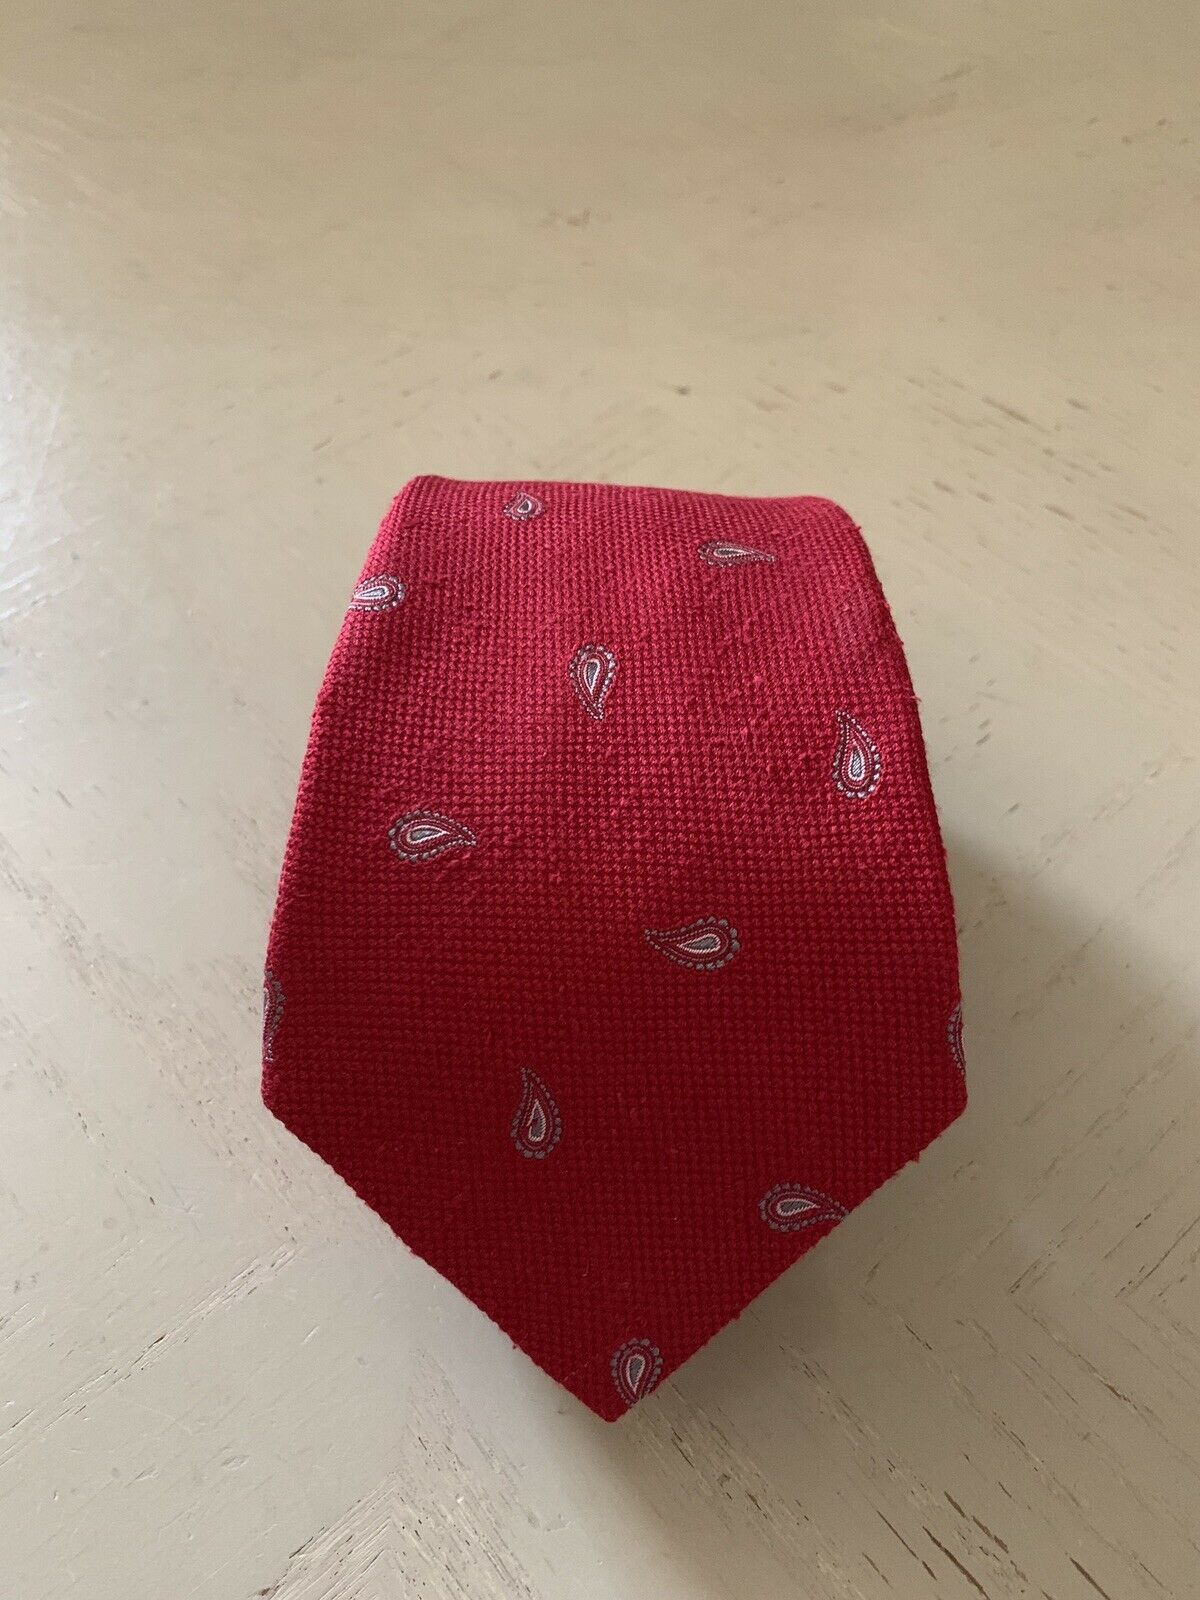 New $225 Isaia Silk Neck Tie Red Made in Italy